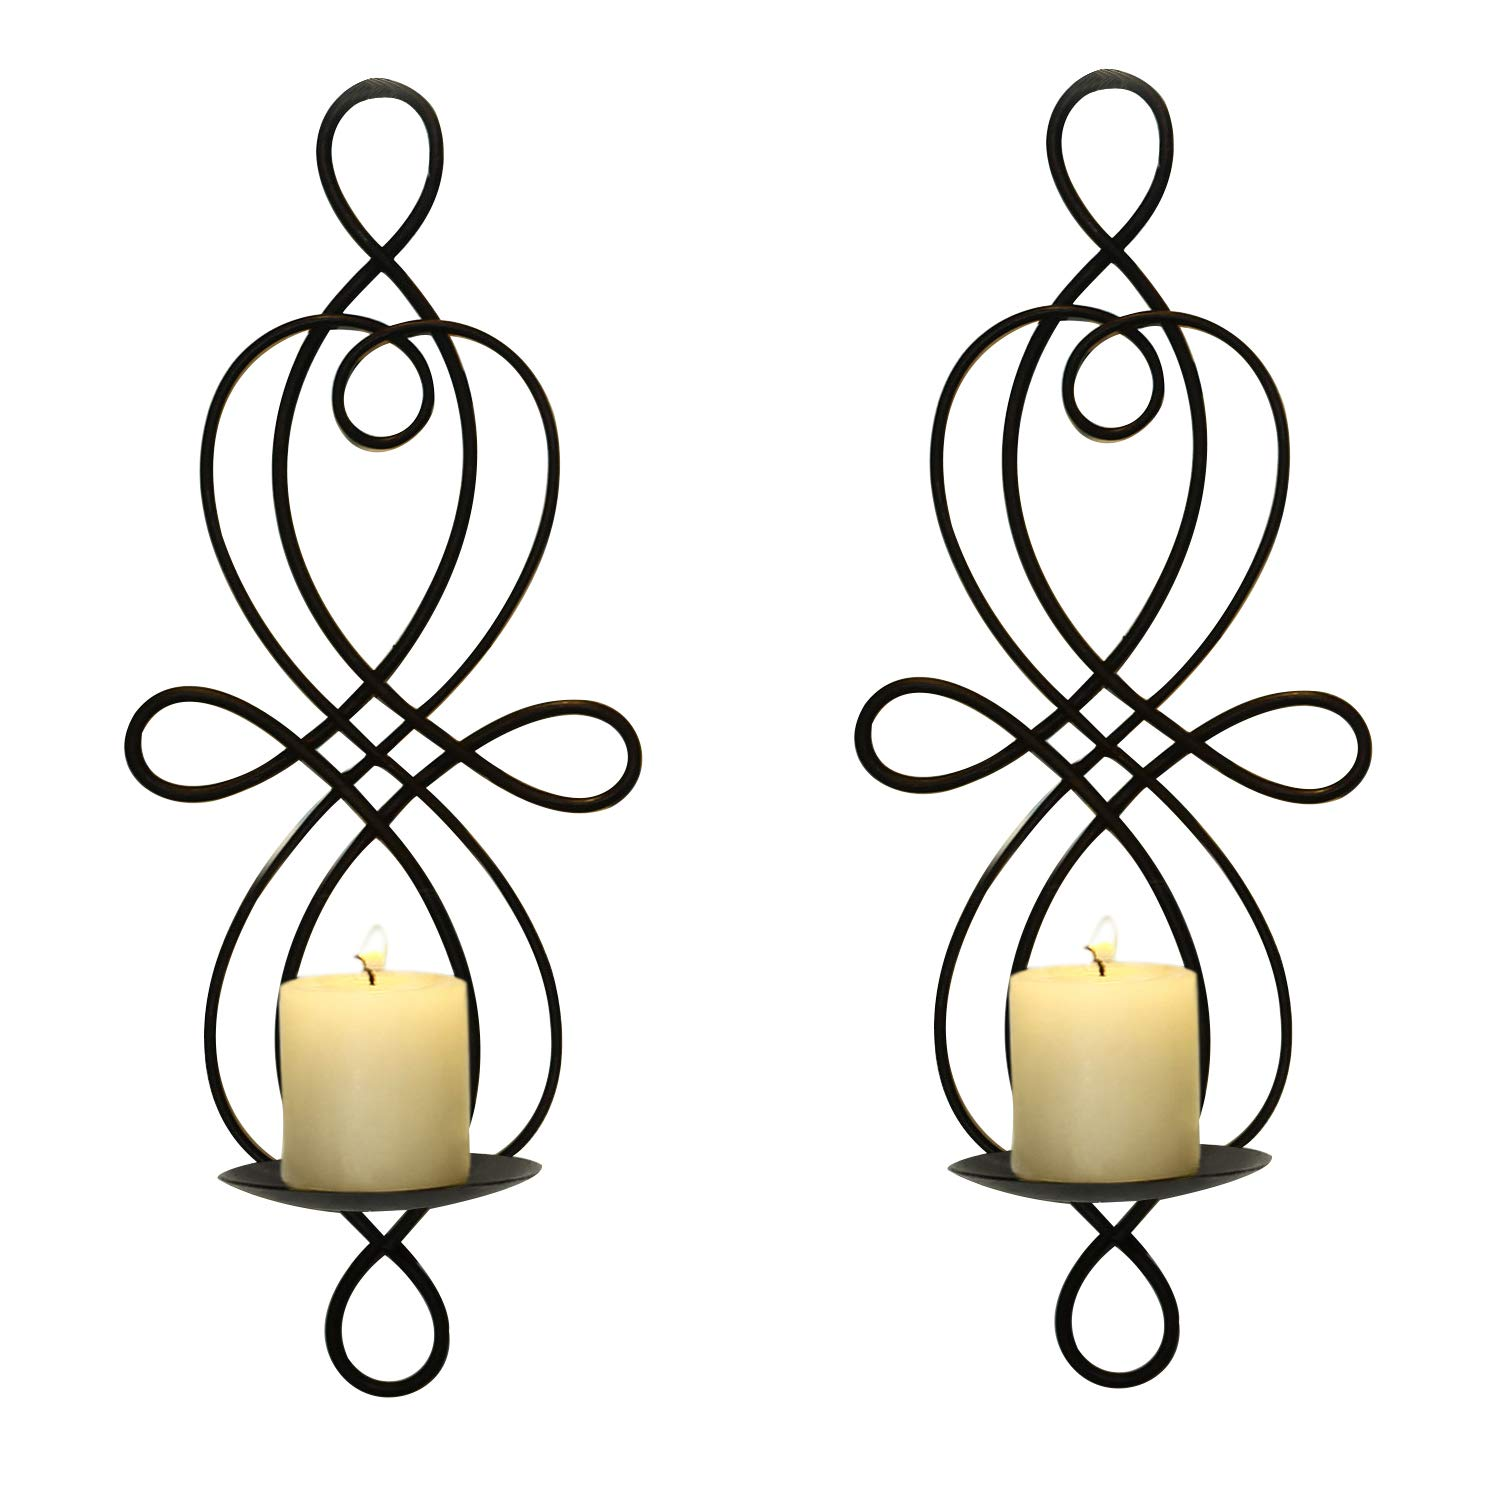 FrameArmy Iron and Glass Vertical Wall Hanging Candle Holder Sconce, Holds Two Pillar Candles SD007